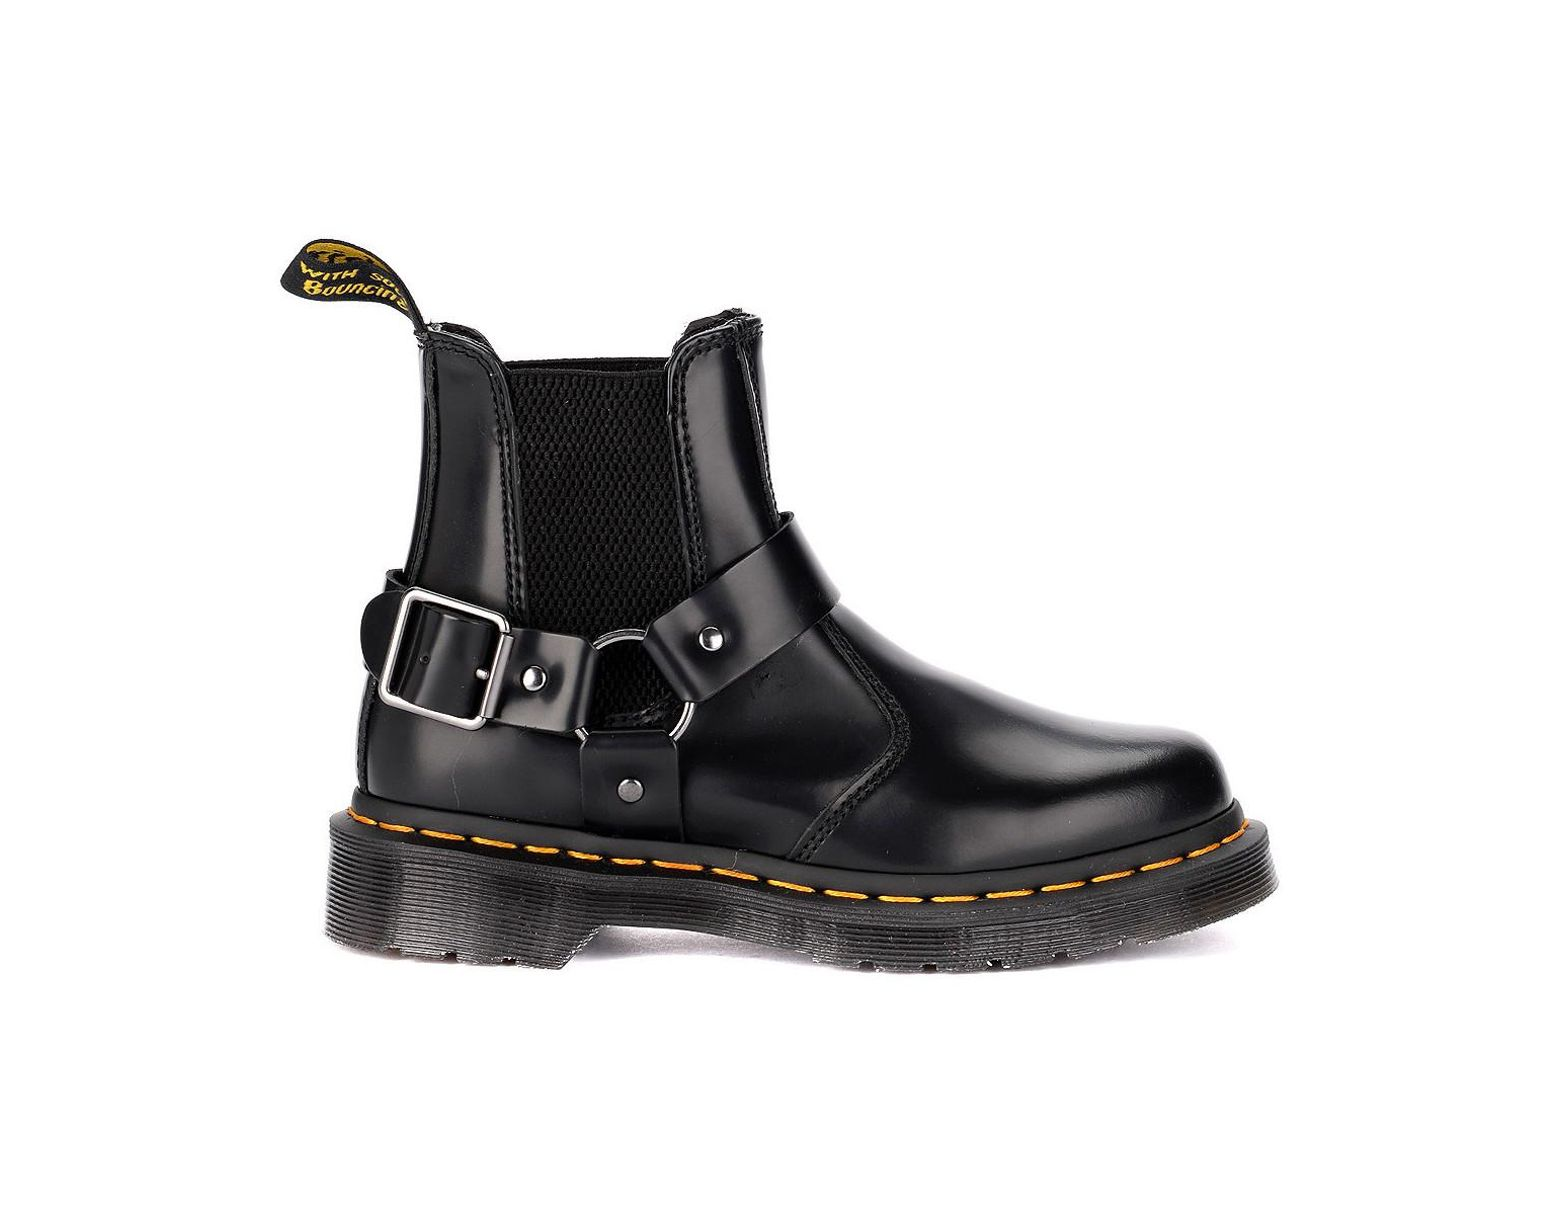 9380833cd872b Dr. Martens Wincox Black Leather Ankle Boots With Buckle Men's Mid Boots In  Black in Black for Men - Save 4% - Lyst